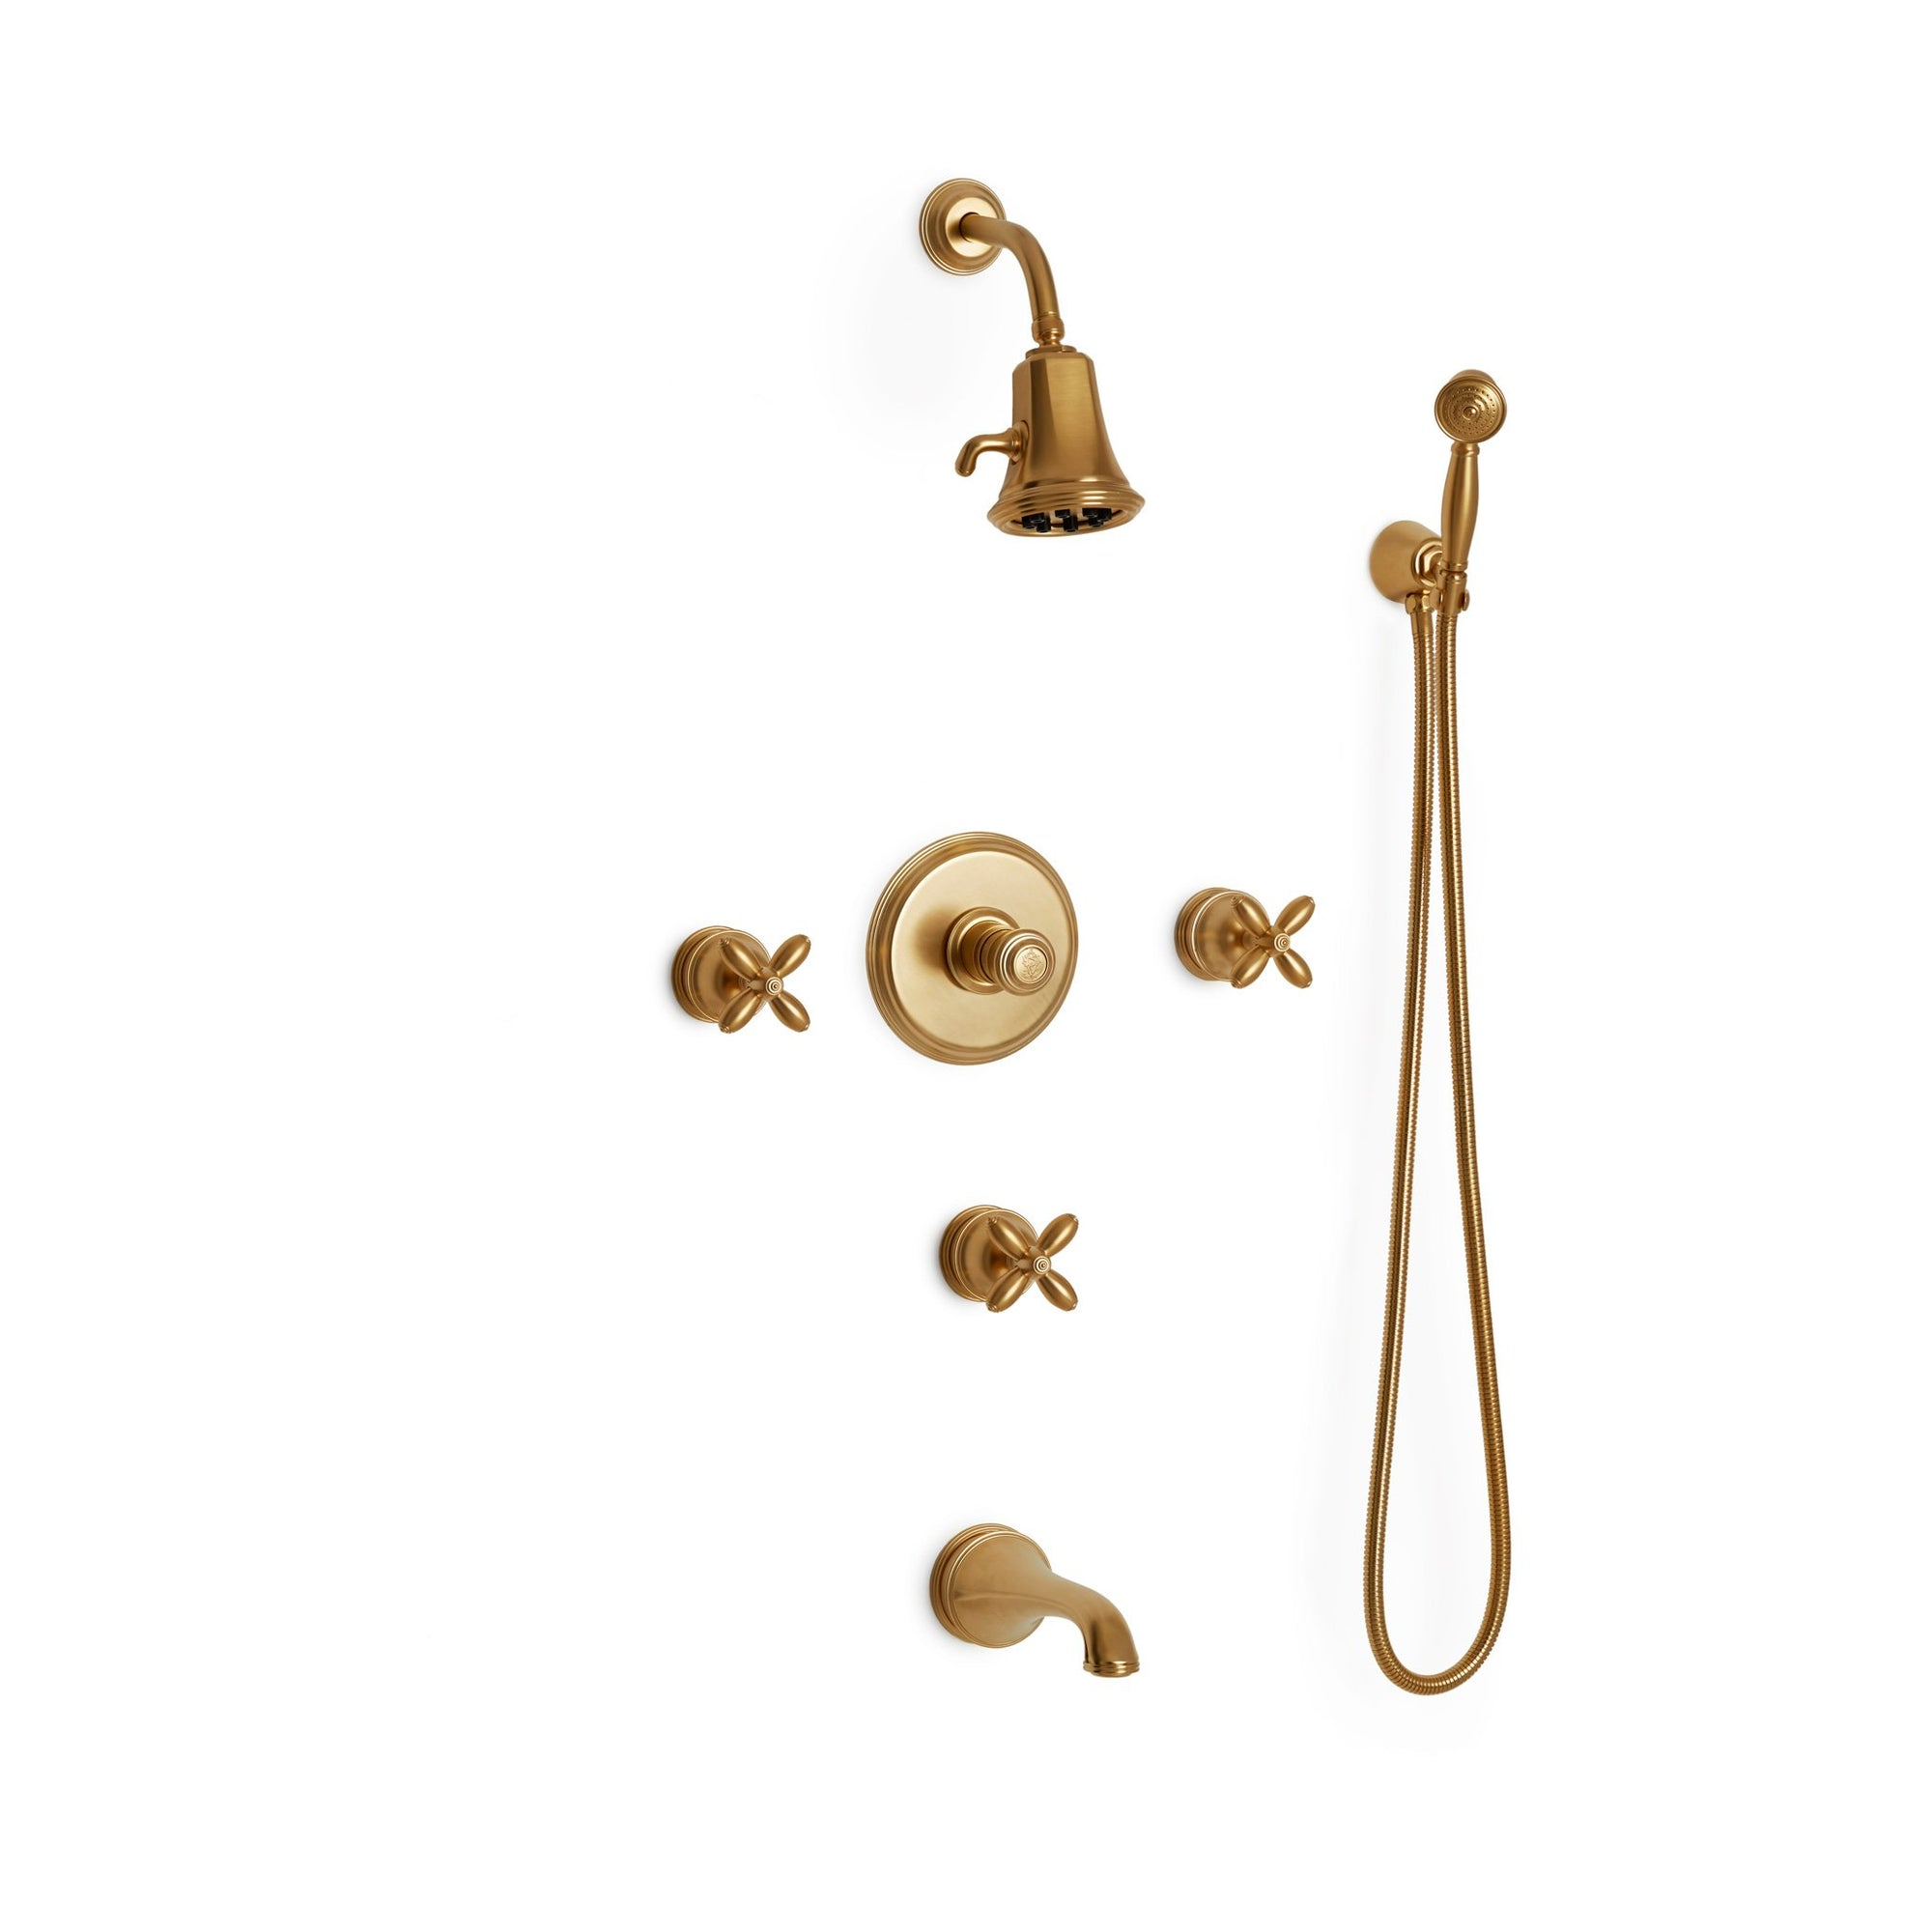 Sherle Wagner International Grey Series I Cross Handle High Flow Thermostatic Shower and Tub System in Gold Plate metal finish